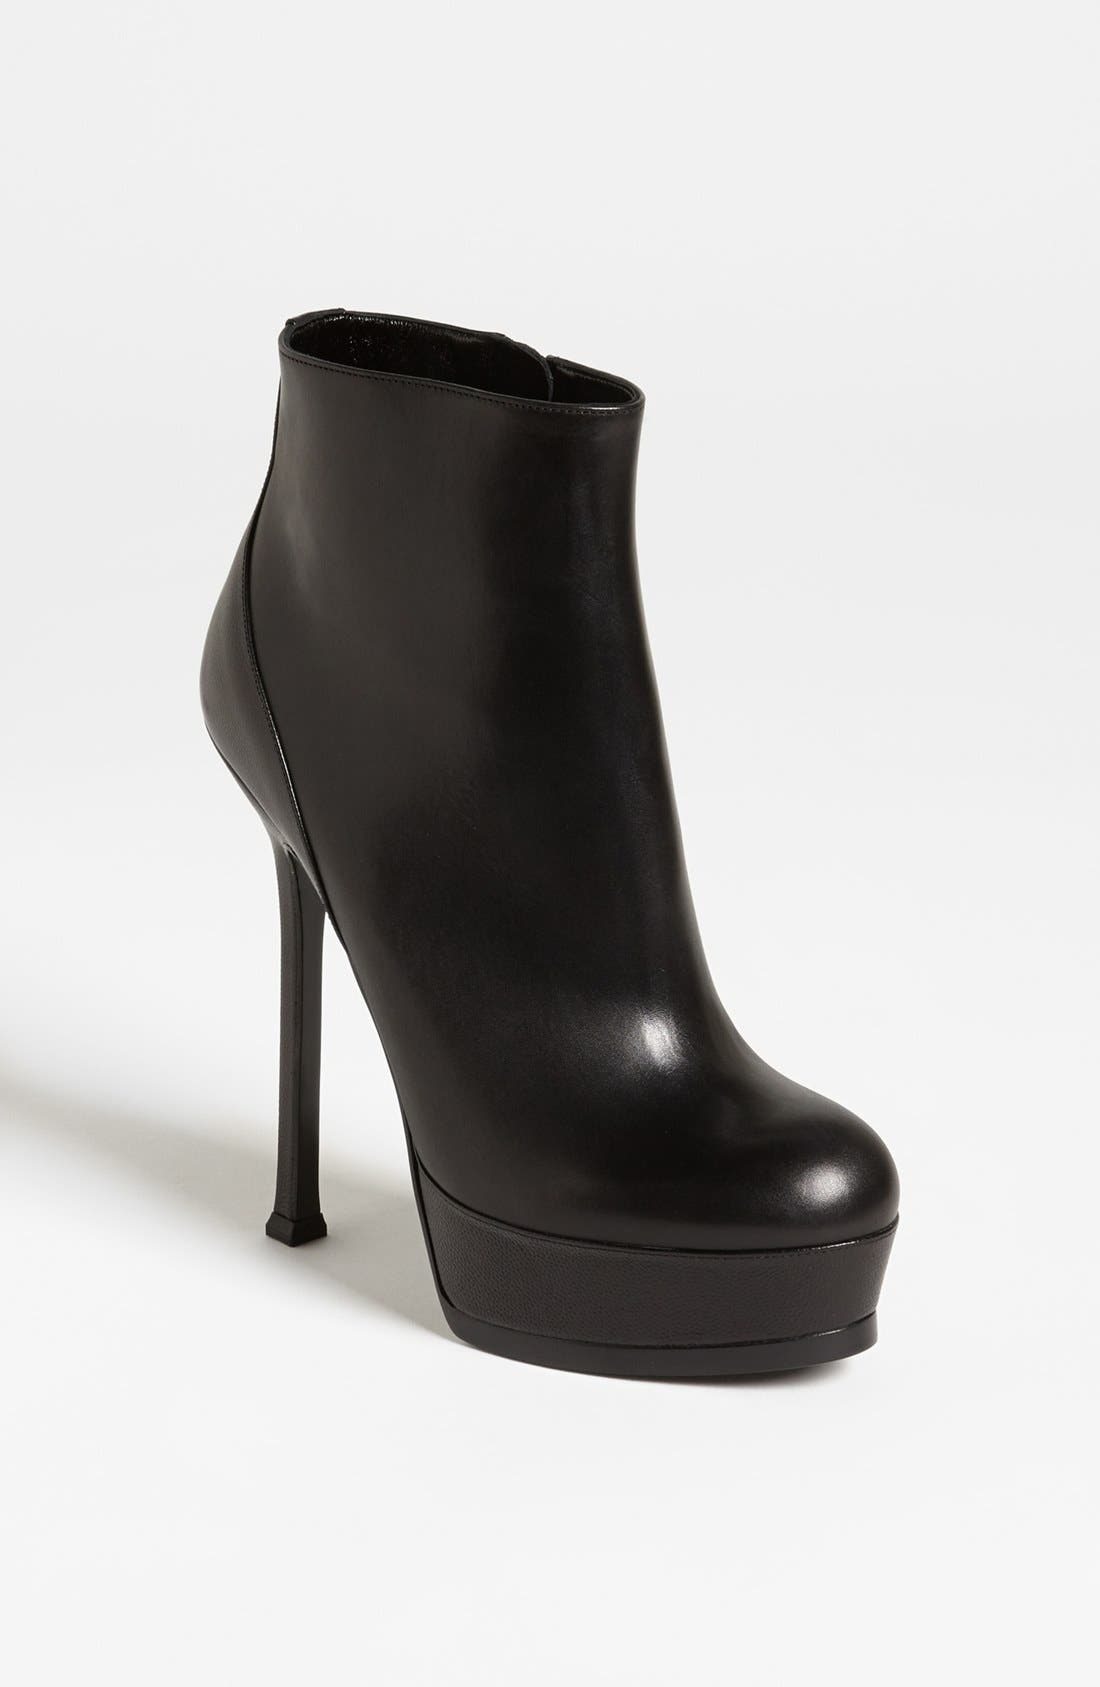 Alternate Image 1 Selected - Saint Laurent 'Tribute Two' Bootie